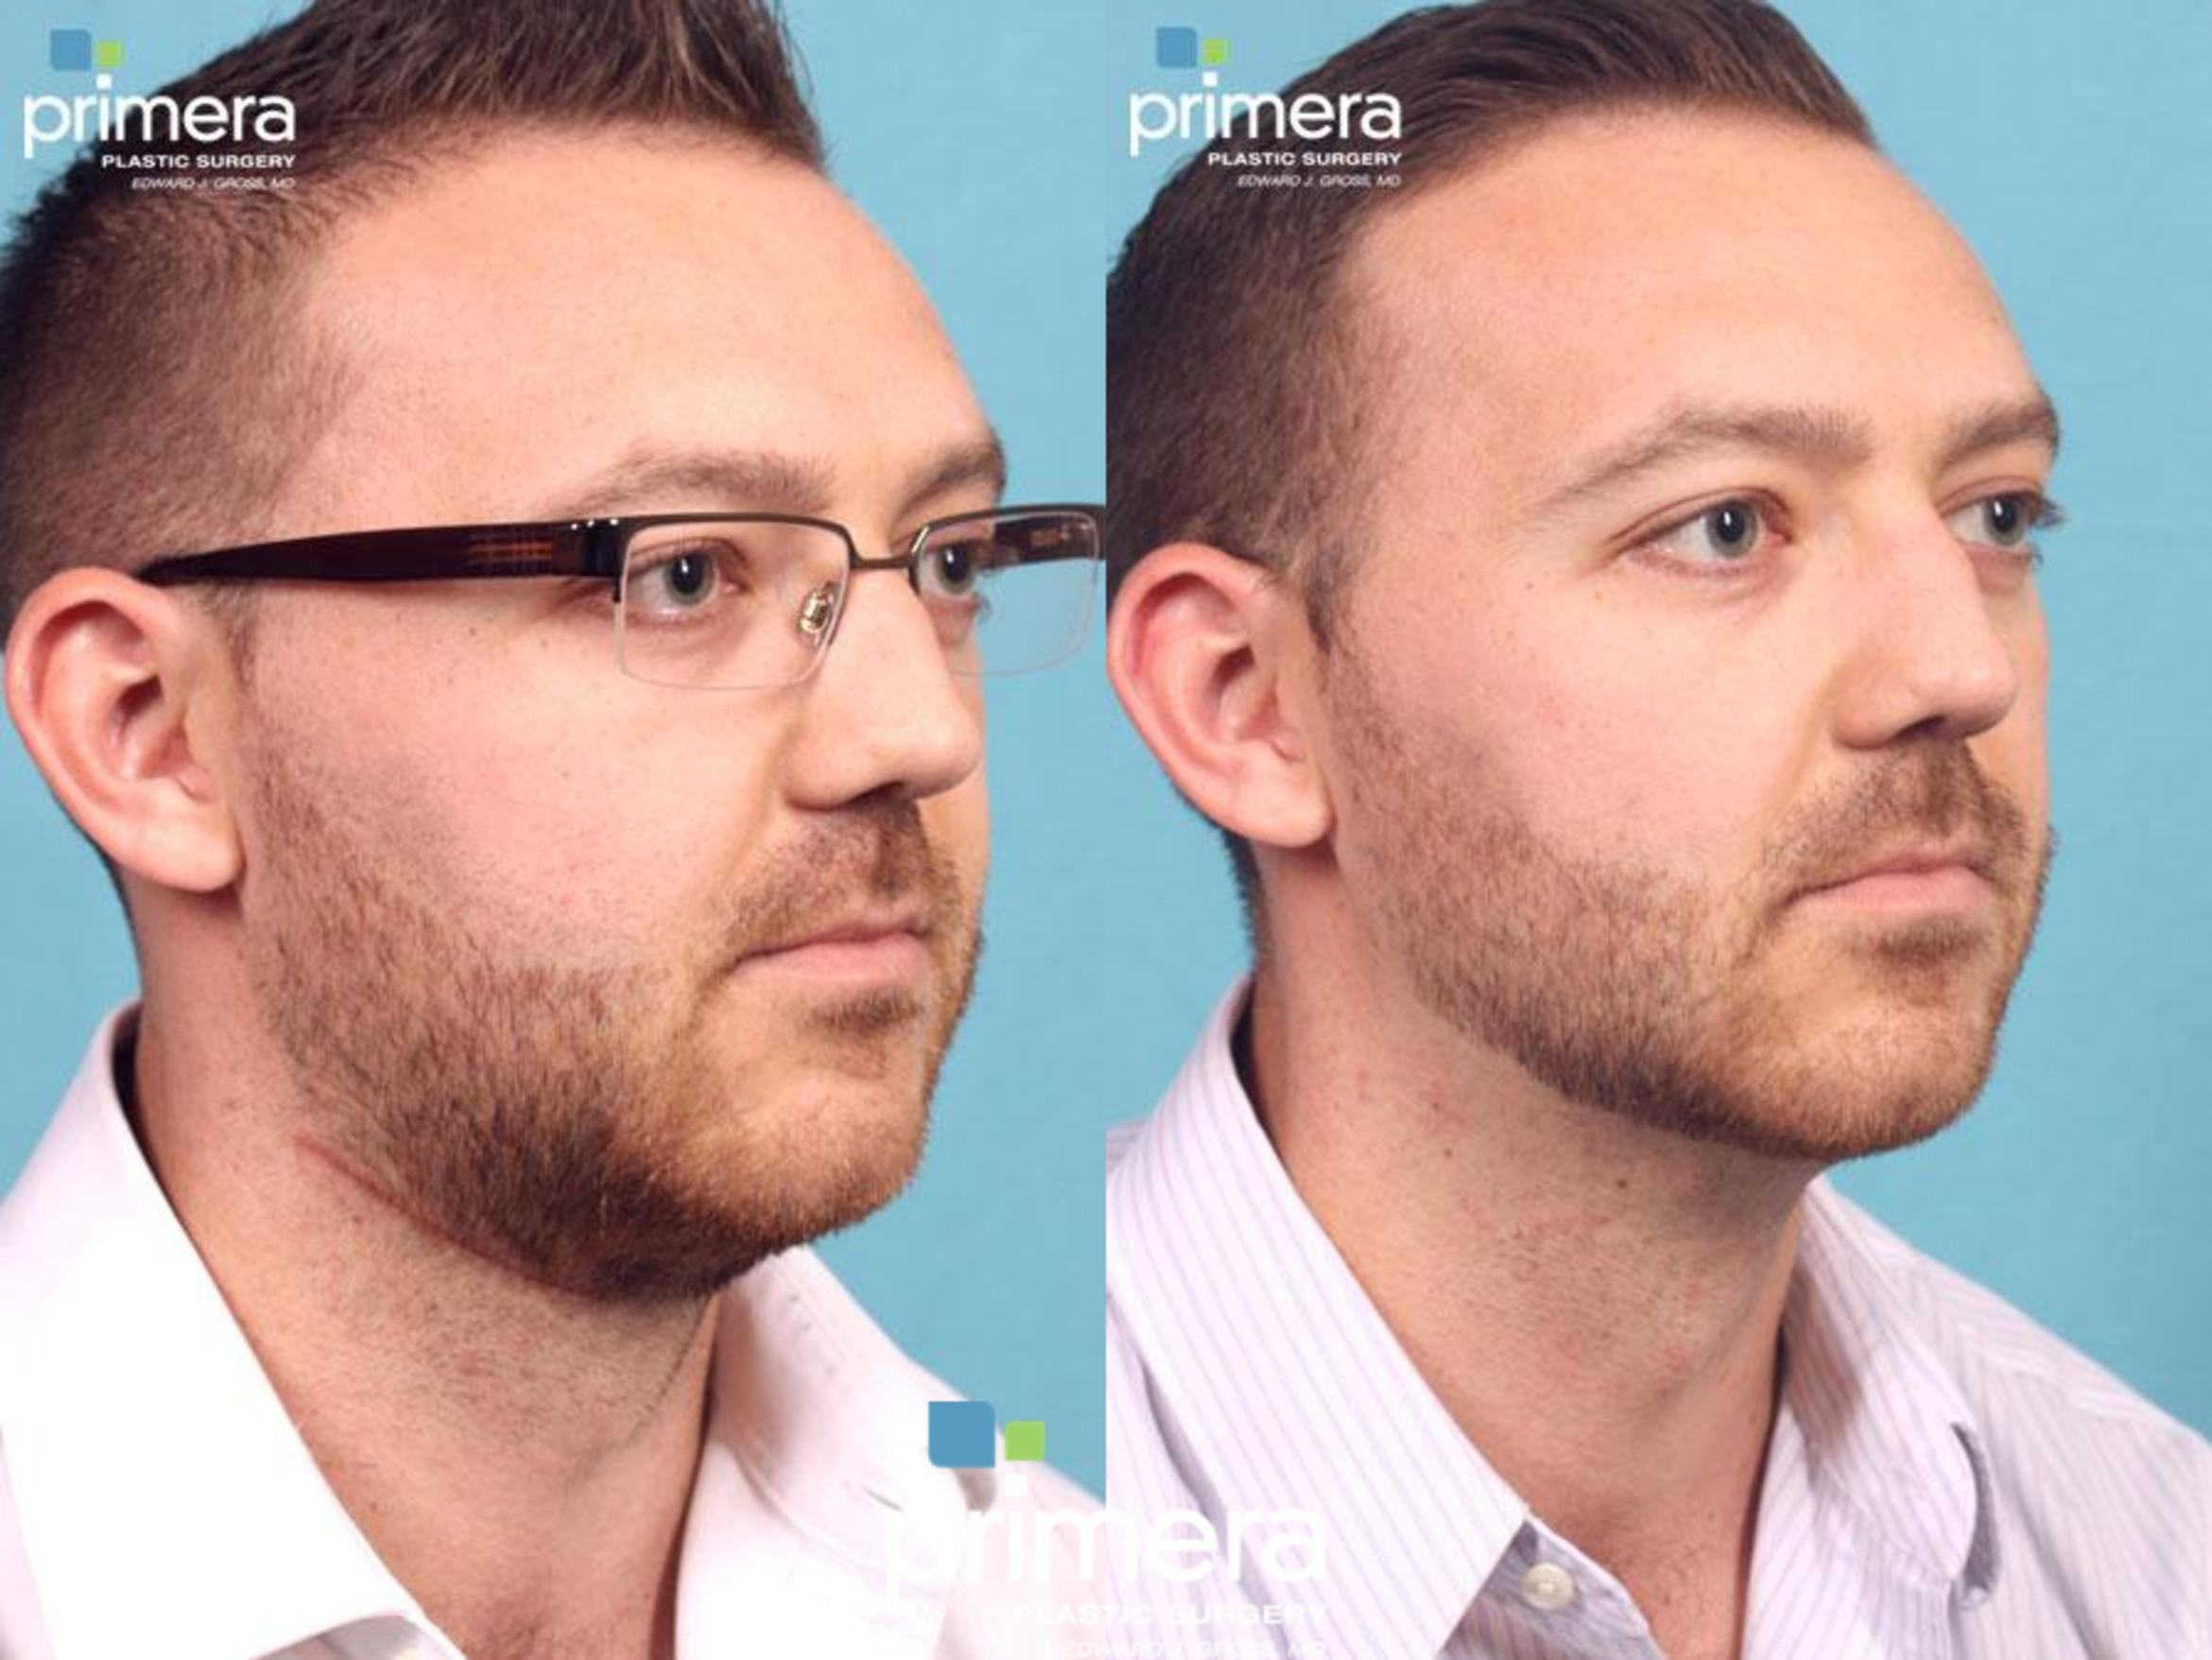 Kybella® Before & After Photo | Orlando, Florida | Primera Plastic Surgery